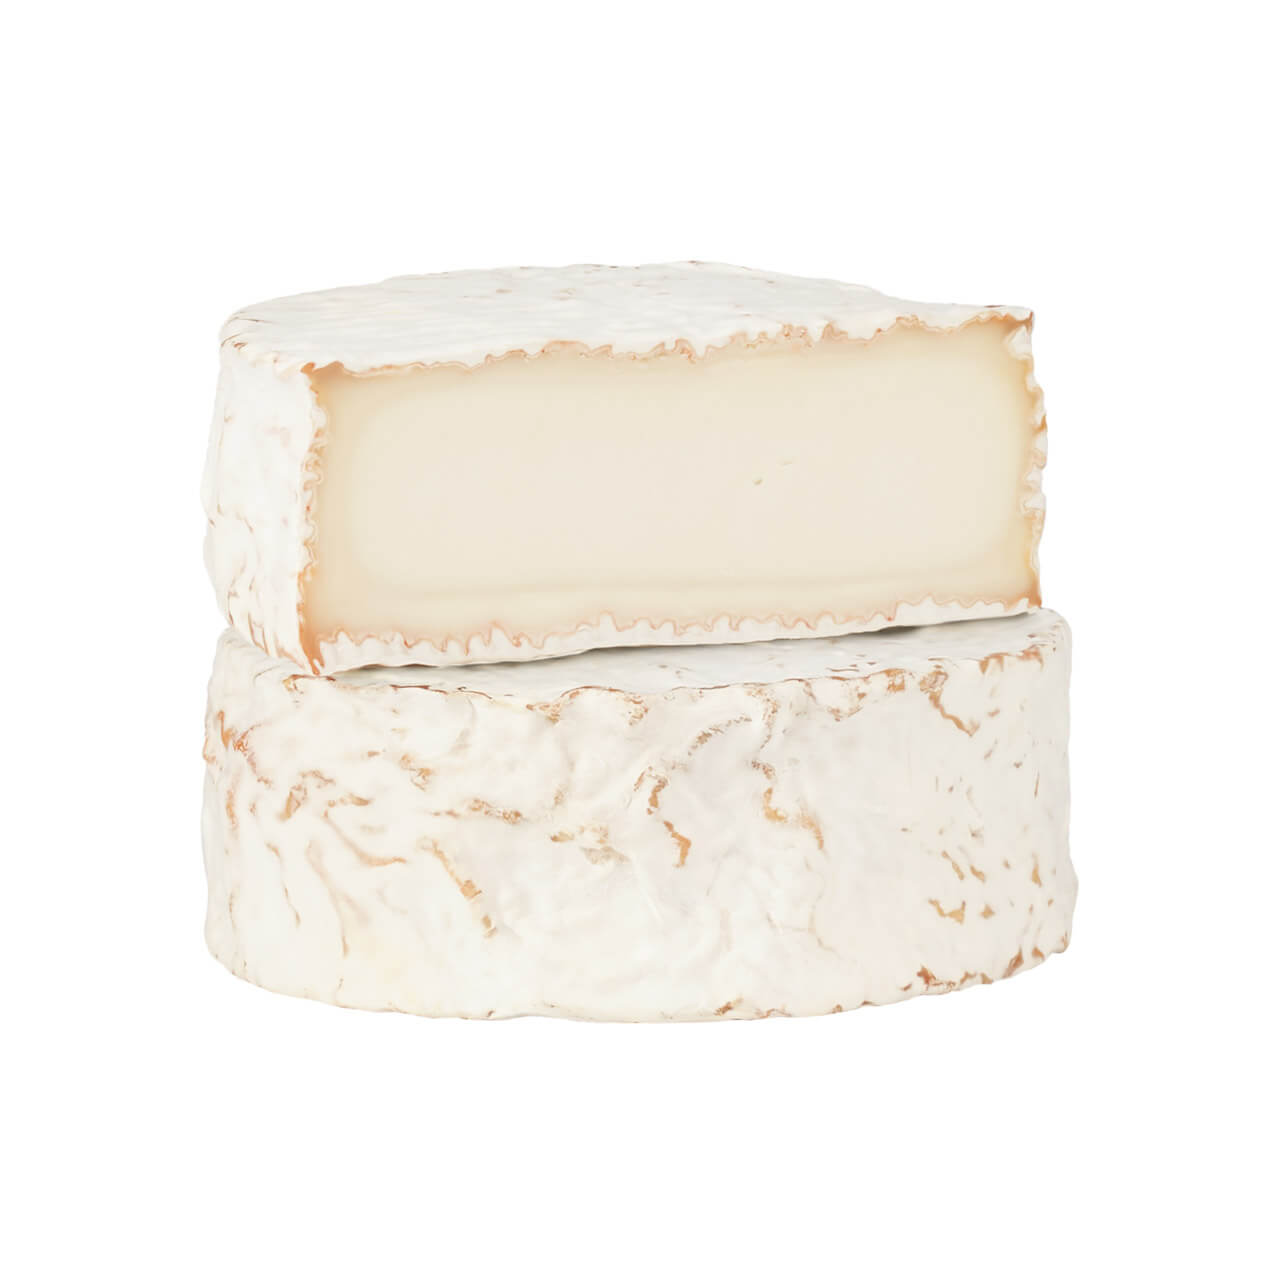 Luna Roja (raw) goats' cheese paprika covered 250g whole